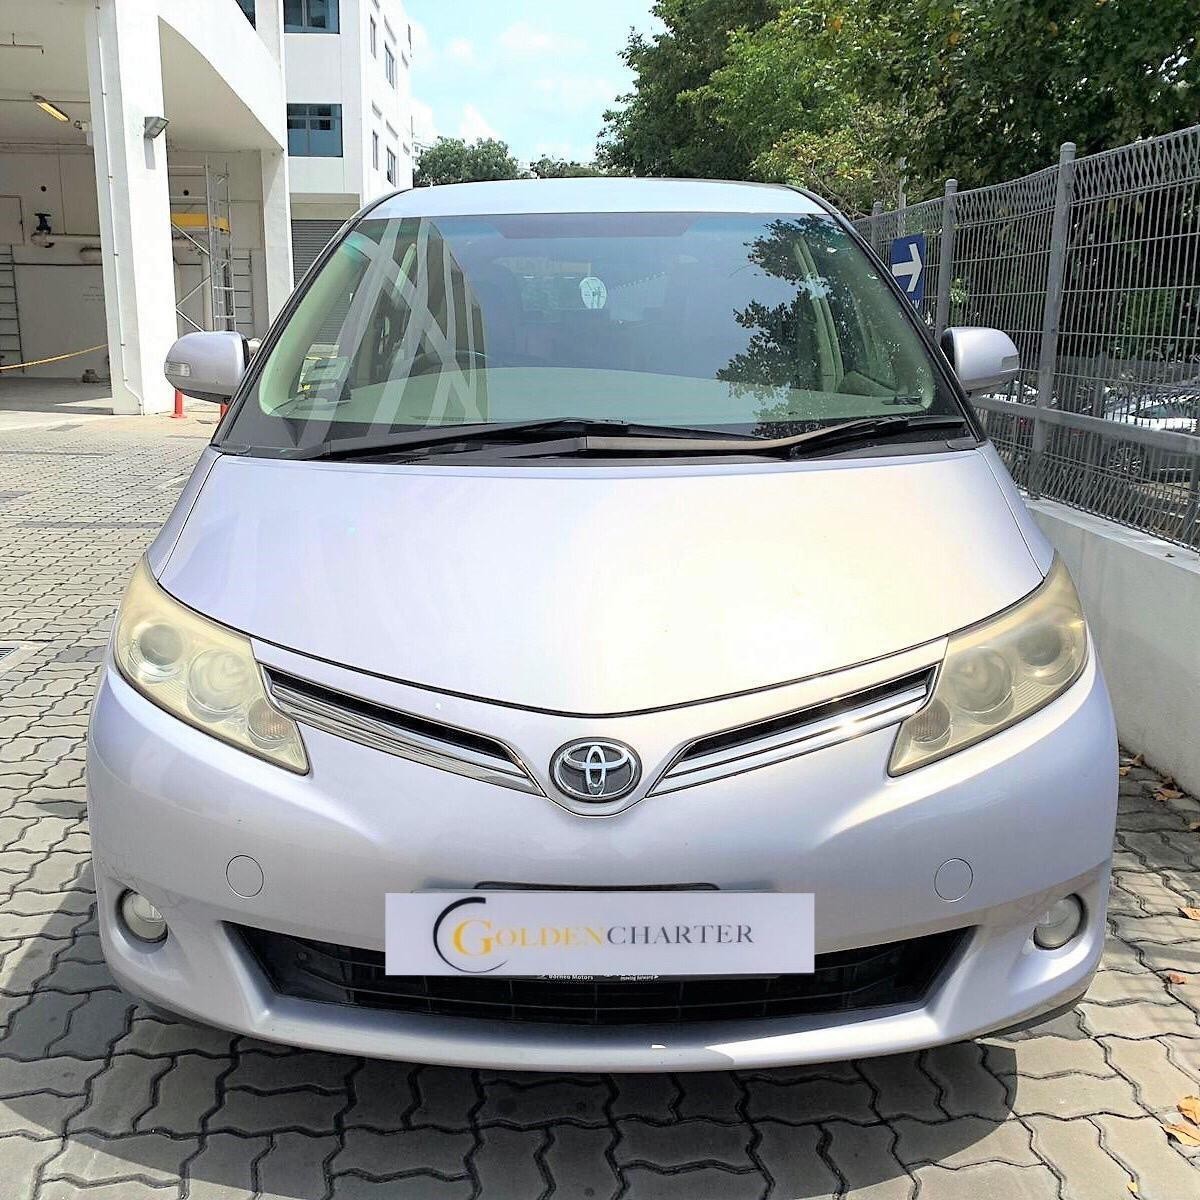 Toyota Previa Cheapest rental GoJek Grab or Personal Use